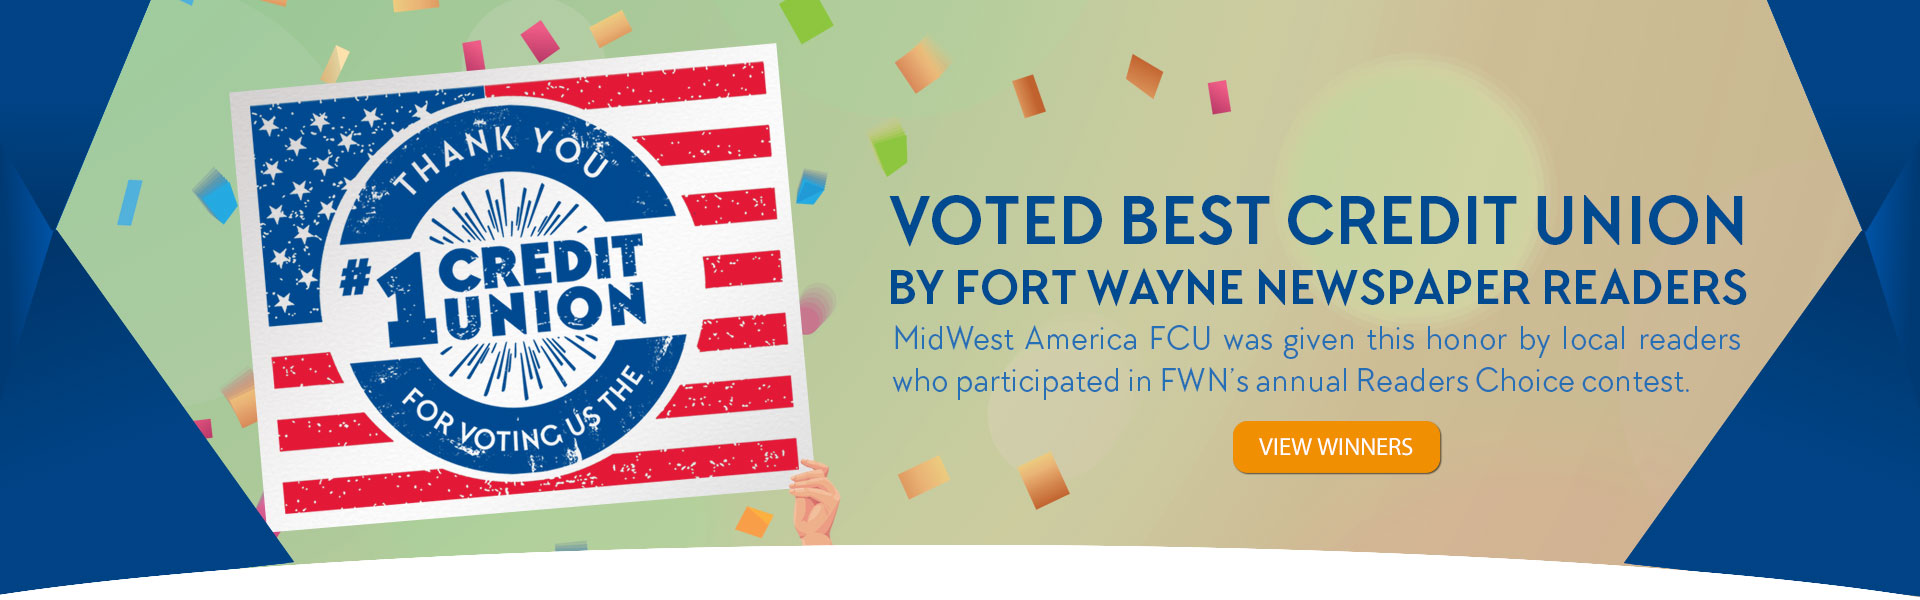 Voted #1 Credit Union by Fort Wayne Newspapers